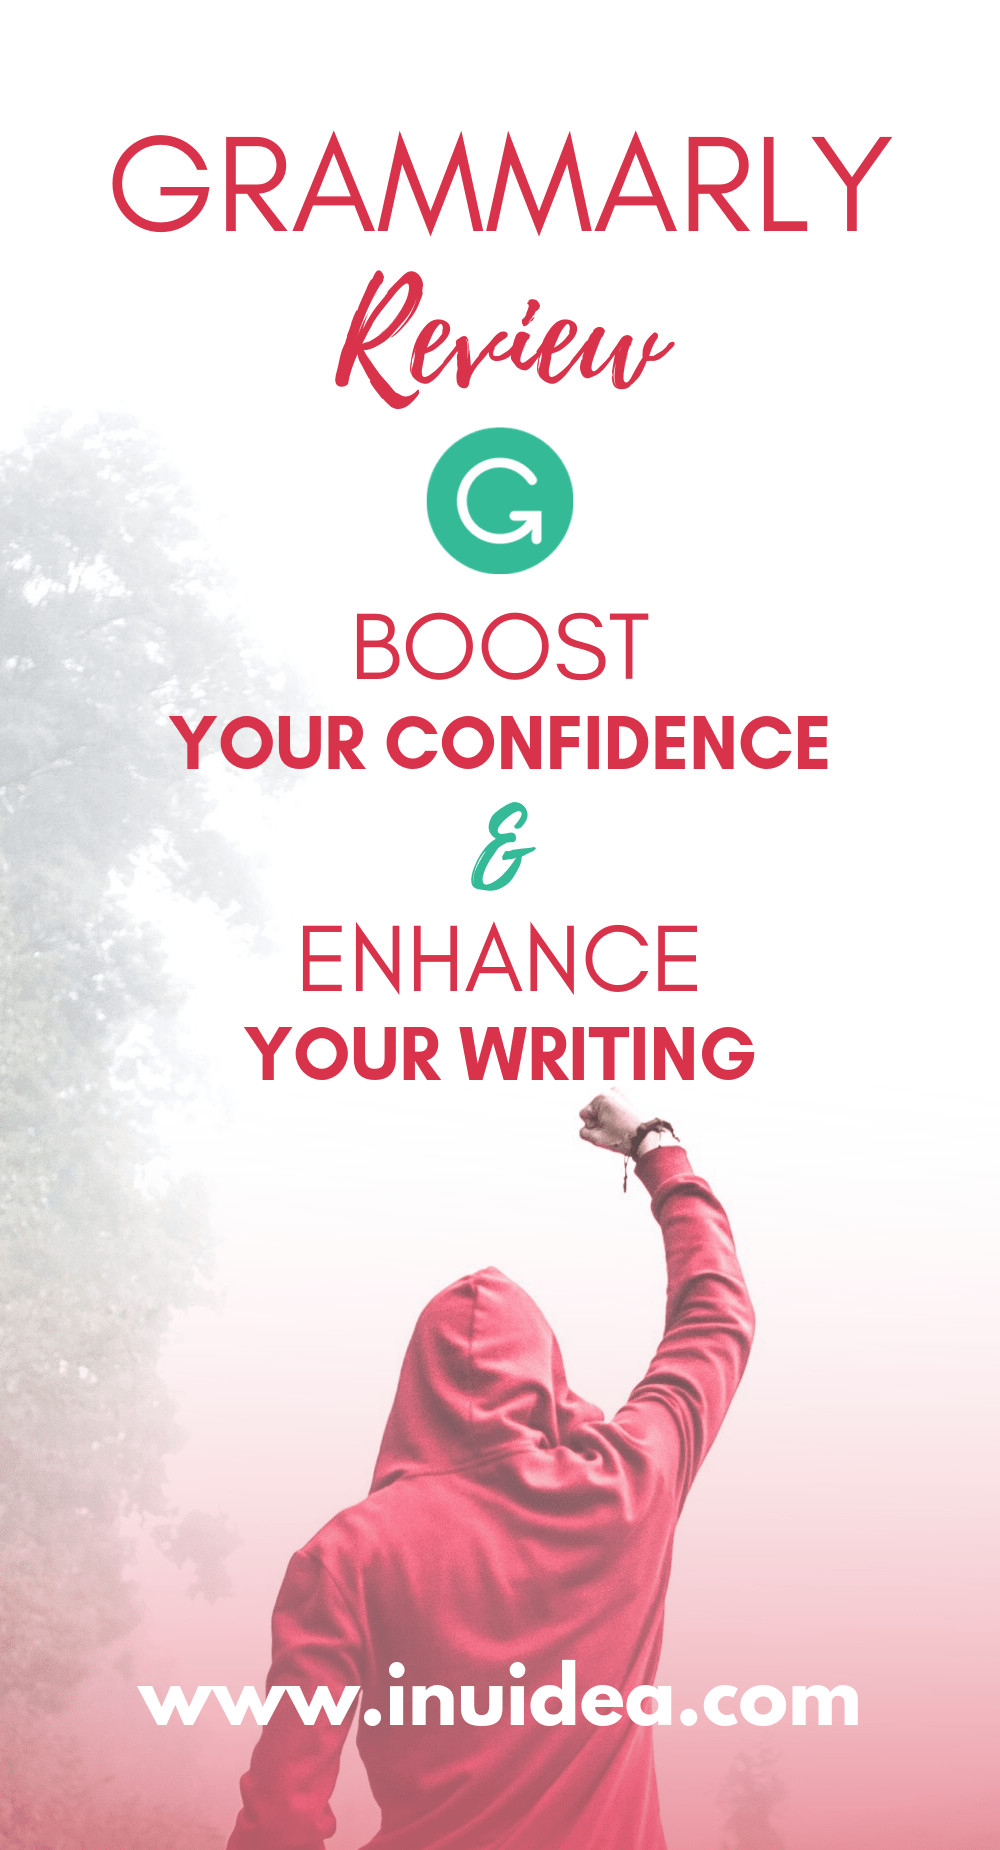 Outlet Discount Code Grammarly